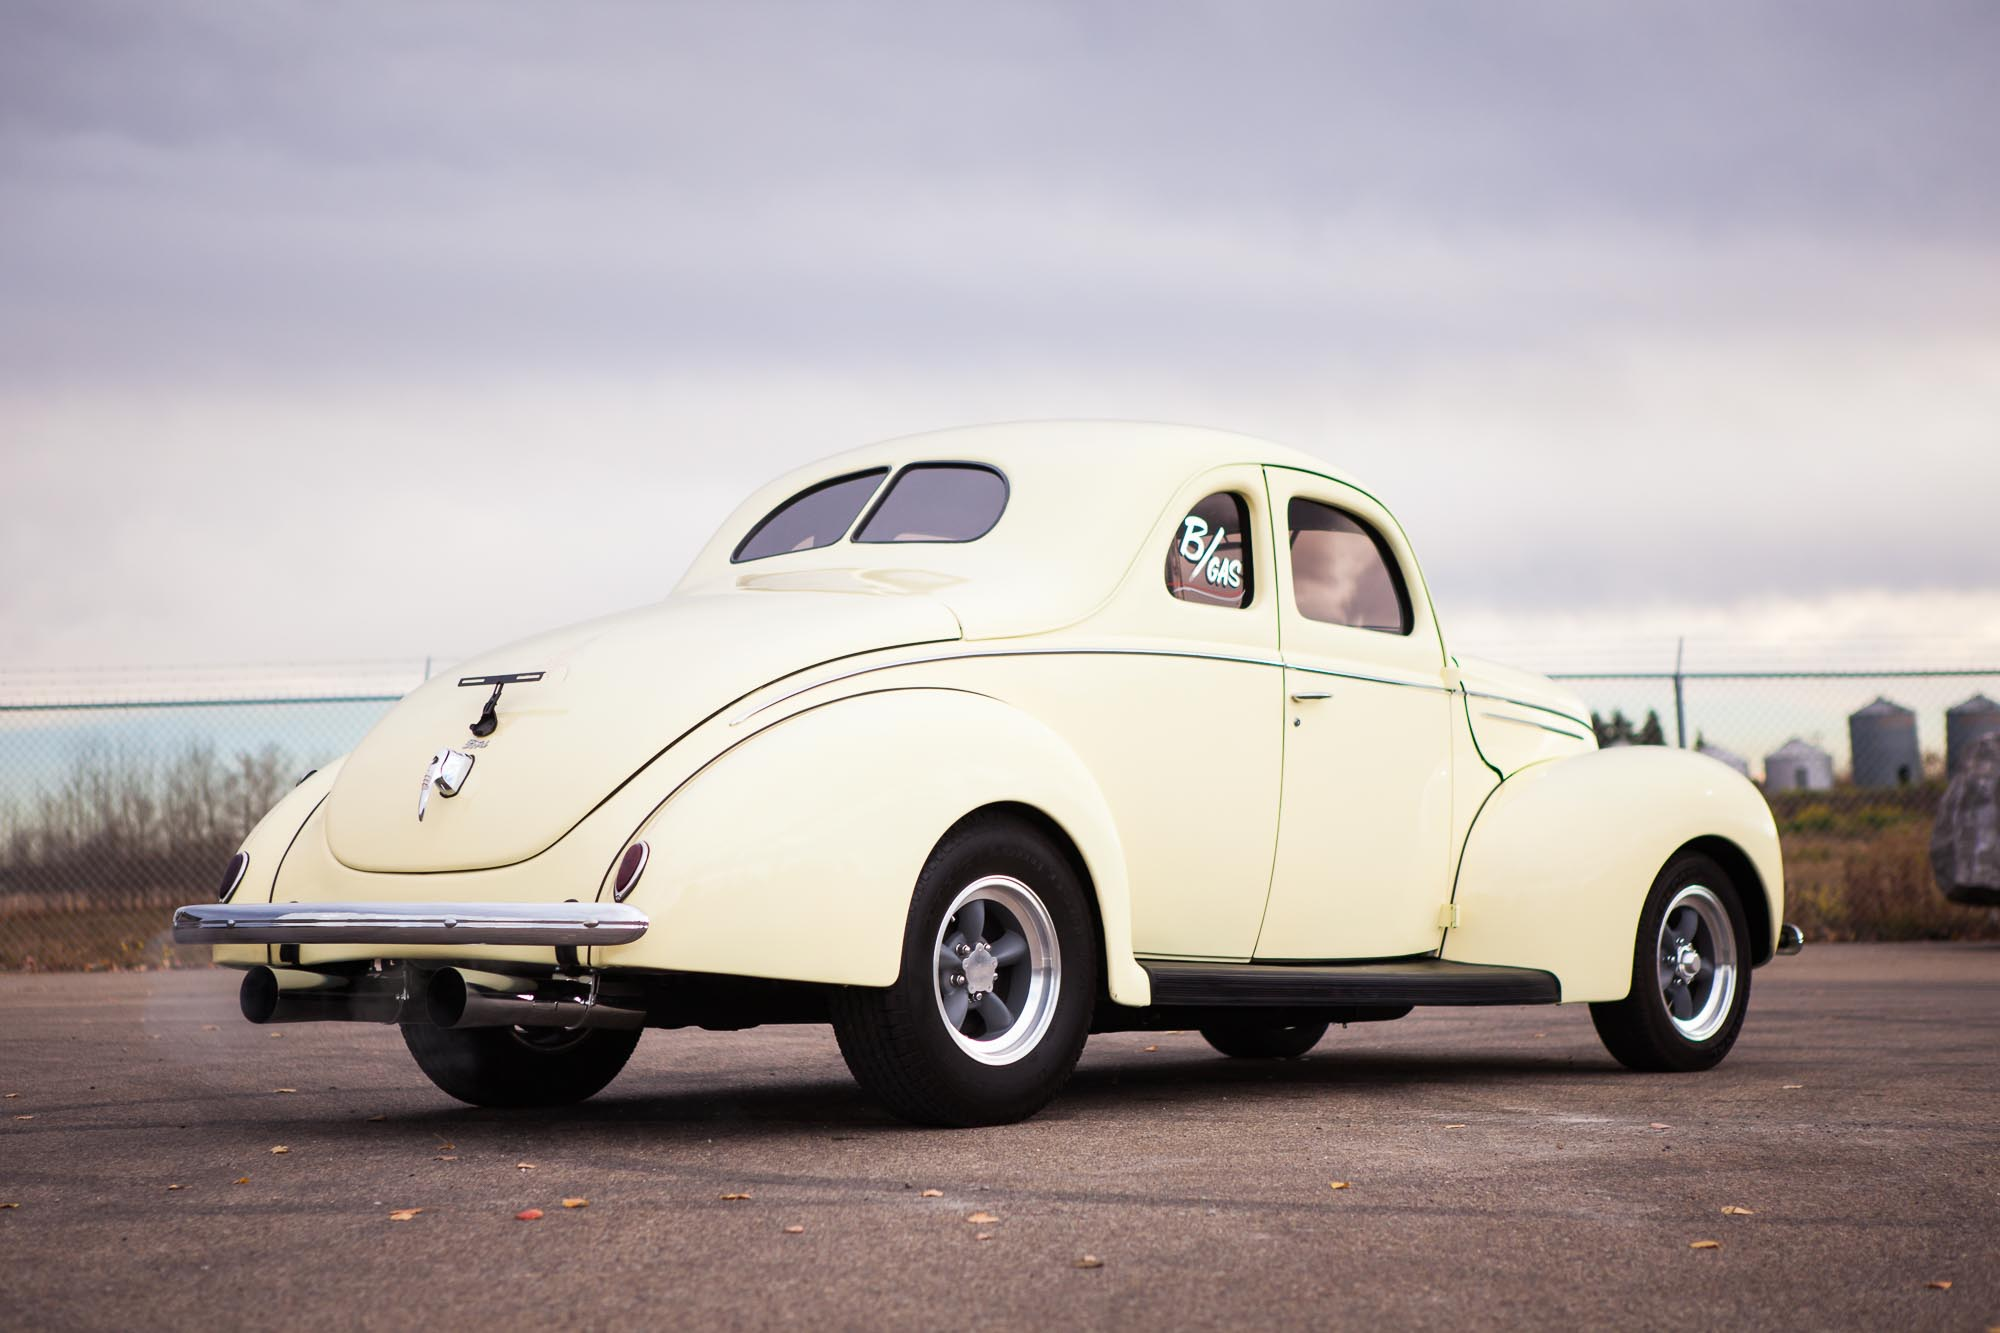 Ford Mustang Ii >> 1939 Ford Custom Coupe - For Sale - The Iron Garage